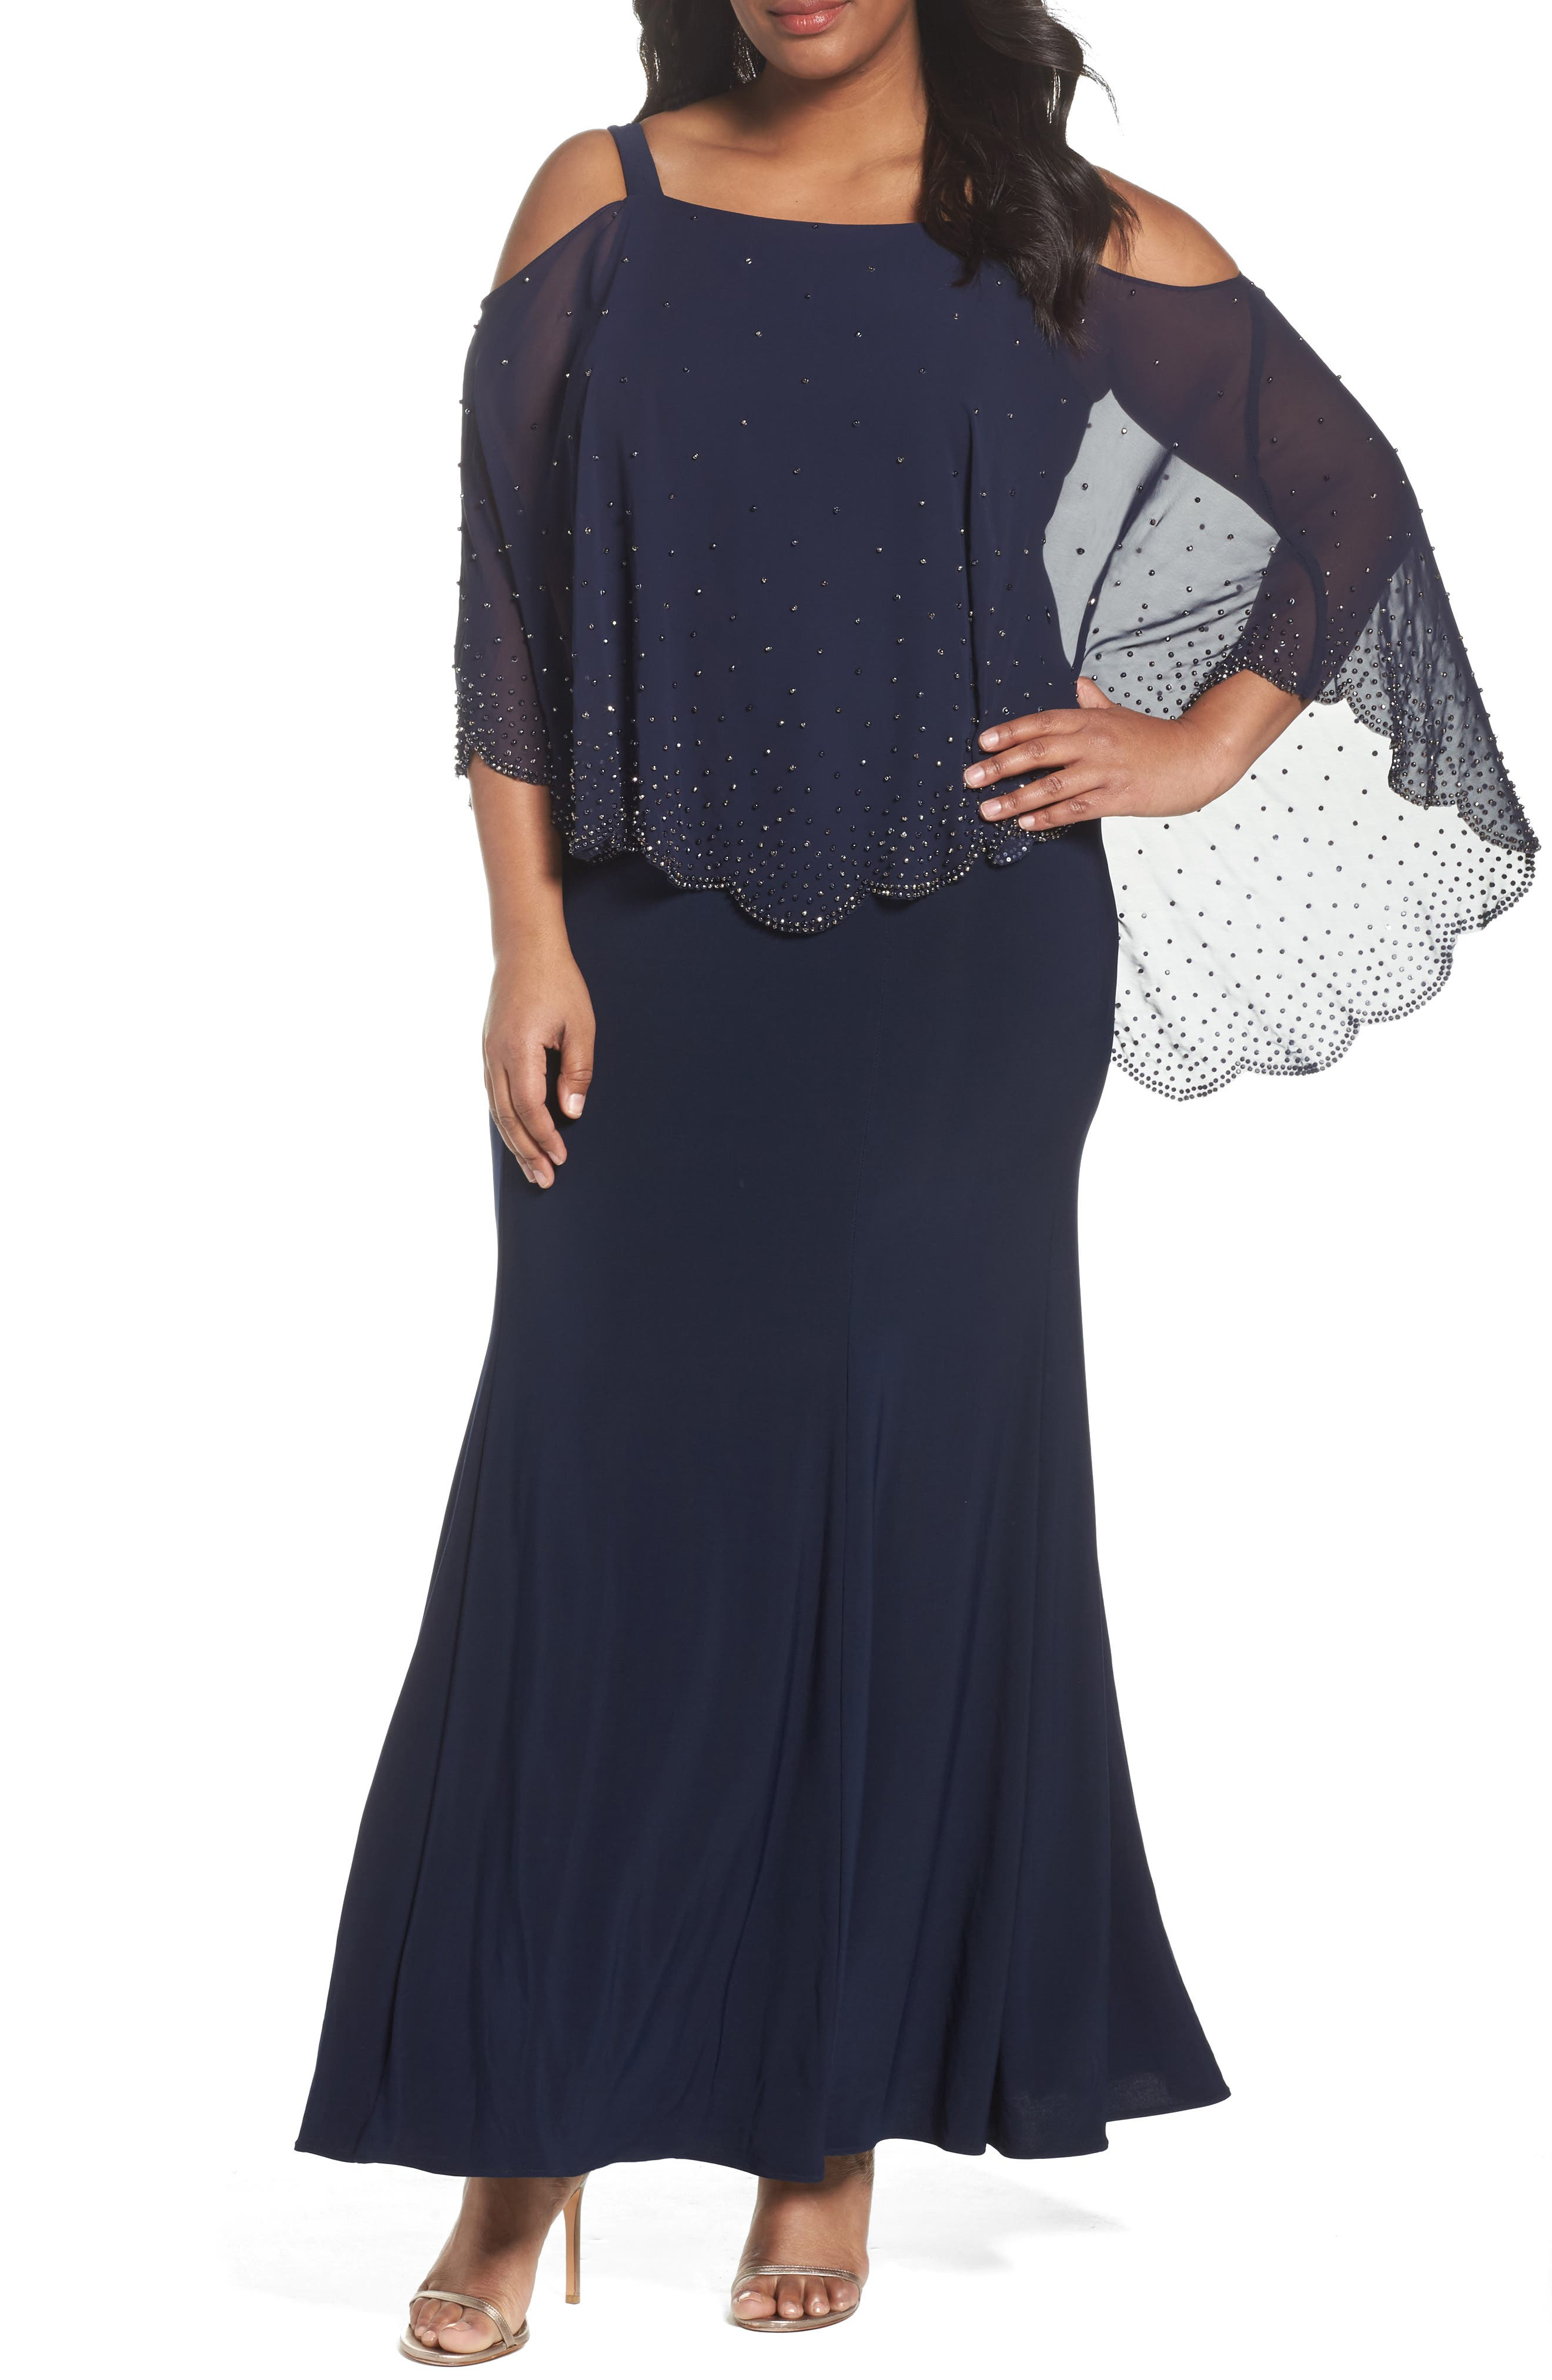 Alternate Image 1 Selected - Xscape Embellished Overlay Off the Shoulder Gown (Plus Size)